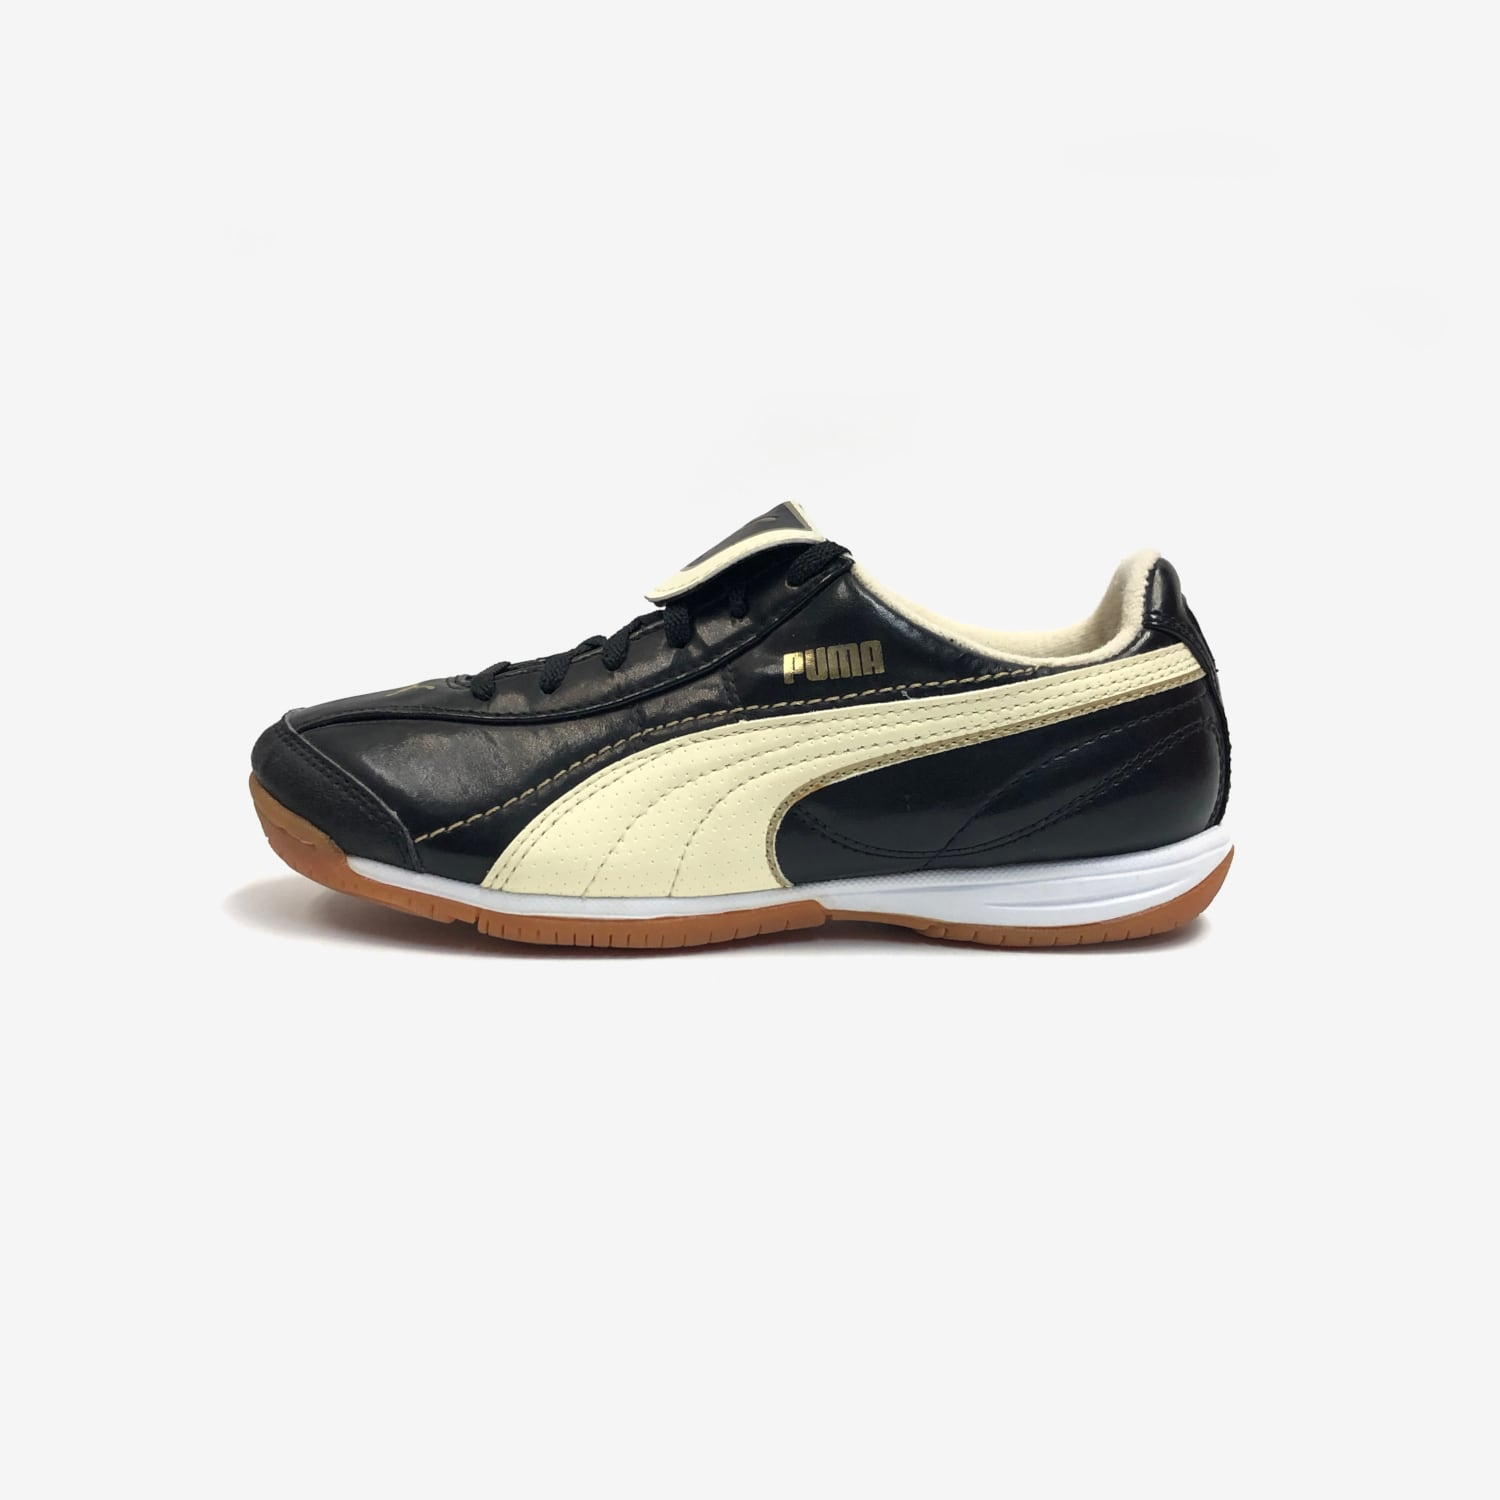 Puma Esito XL IT Women s - La Liga Soccer a4c7d1568